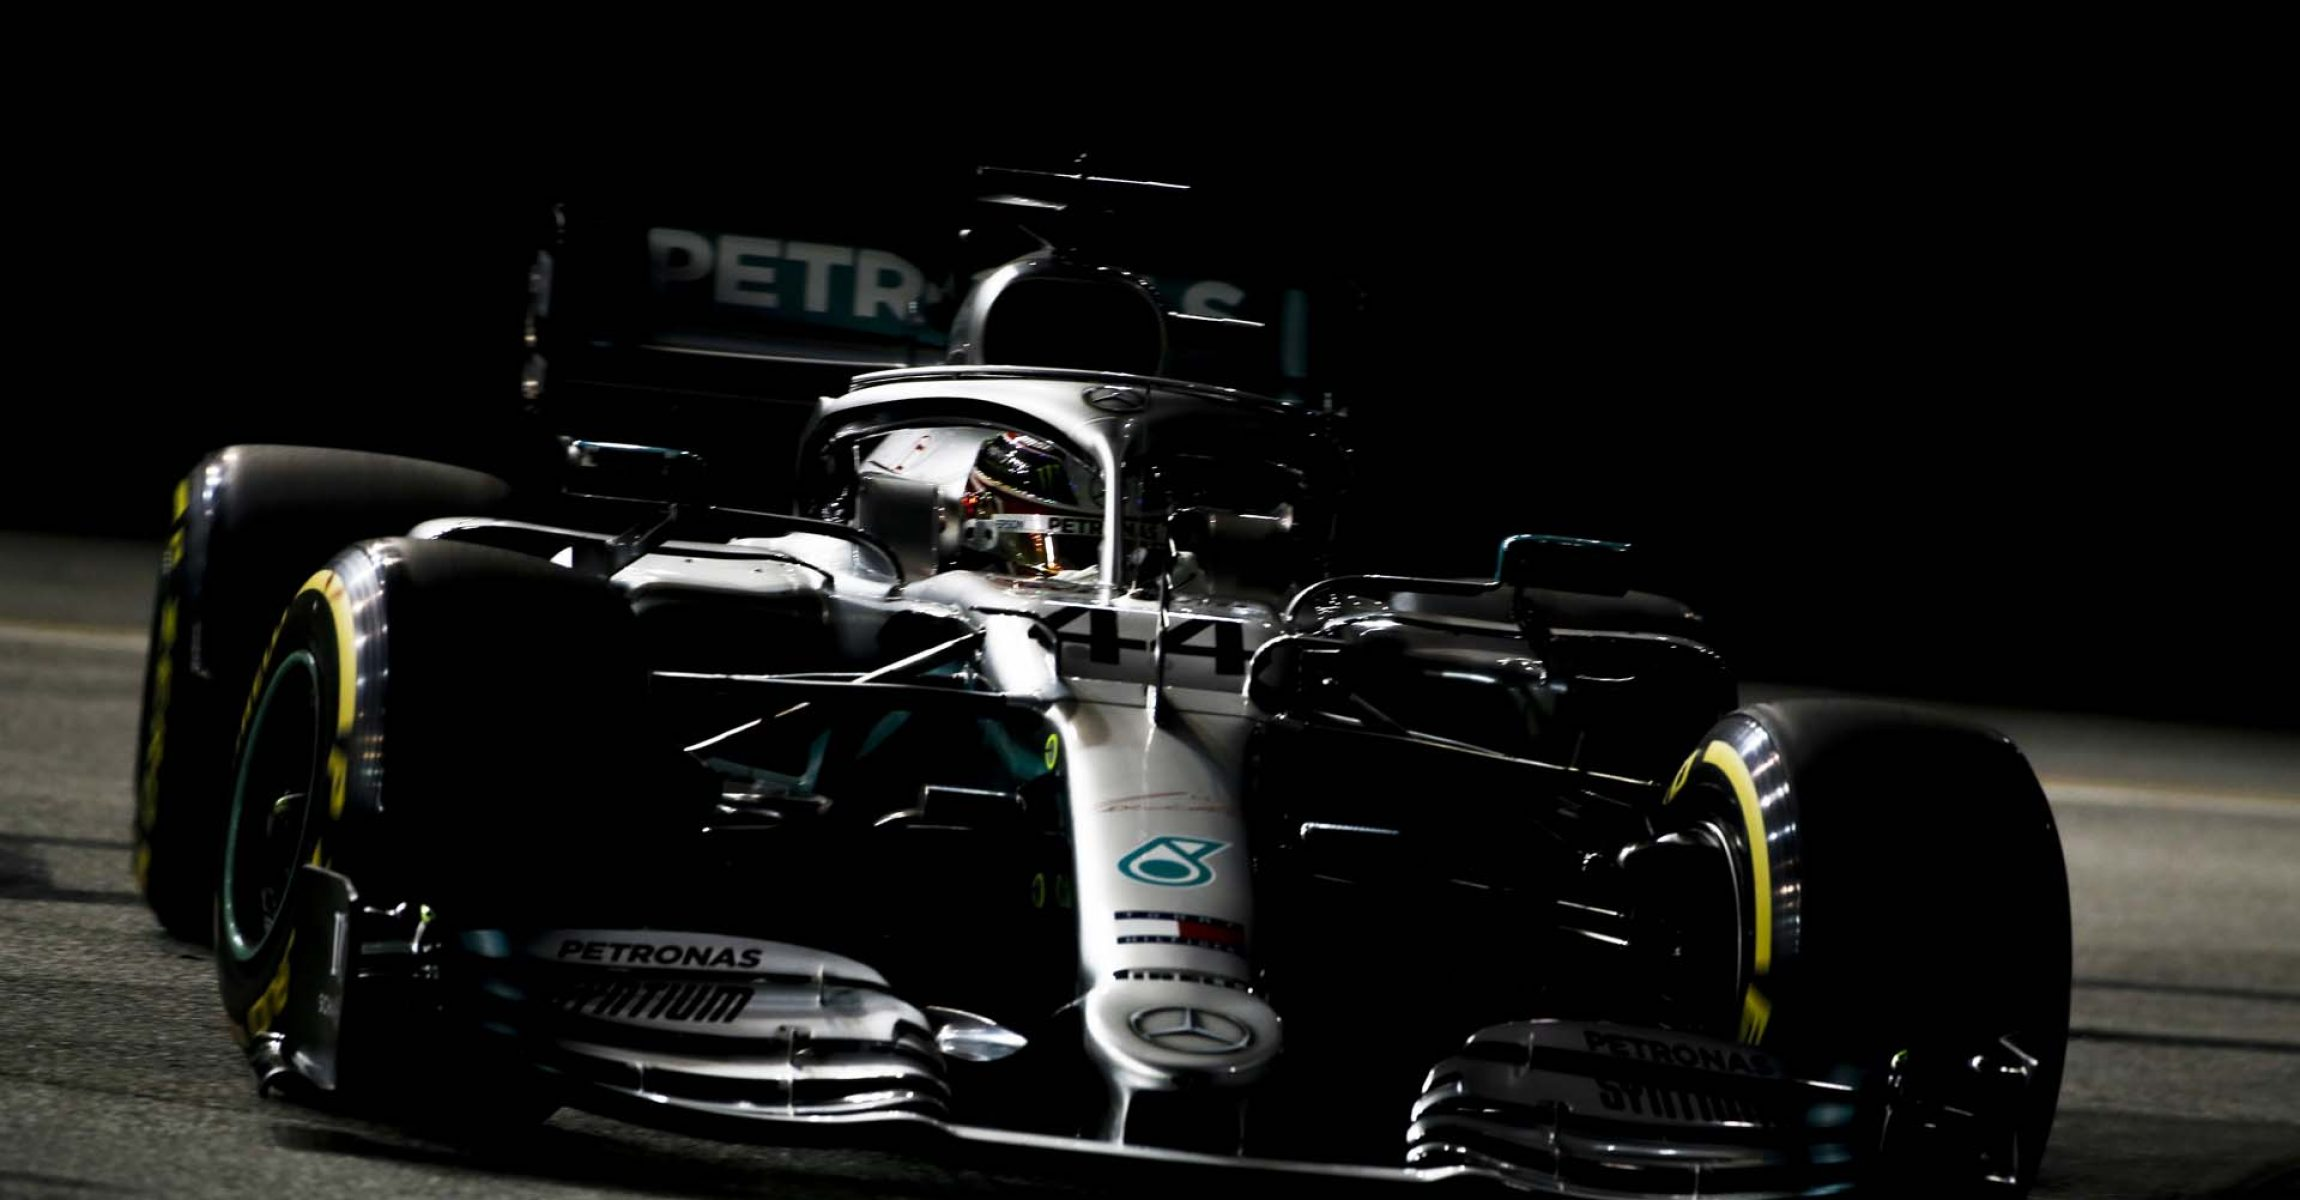 SINGAPORE STREET CIRCUIT, SINGAPORE - SEPTEMBER 21: Lewis Hamilton, Mercedes AMG F1 W10 during the Singapore GP at Singapore Street Circuit on September 21, 2019 in Singapore Street Circuit, Singapore. (Photo by Joe Portlock / LAT Images)